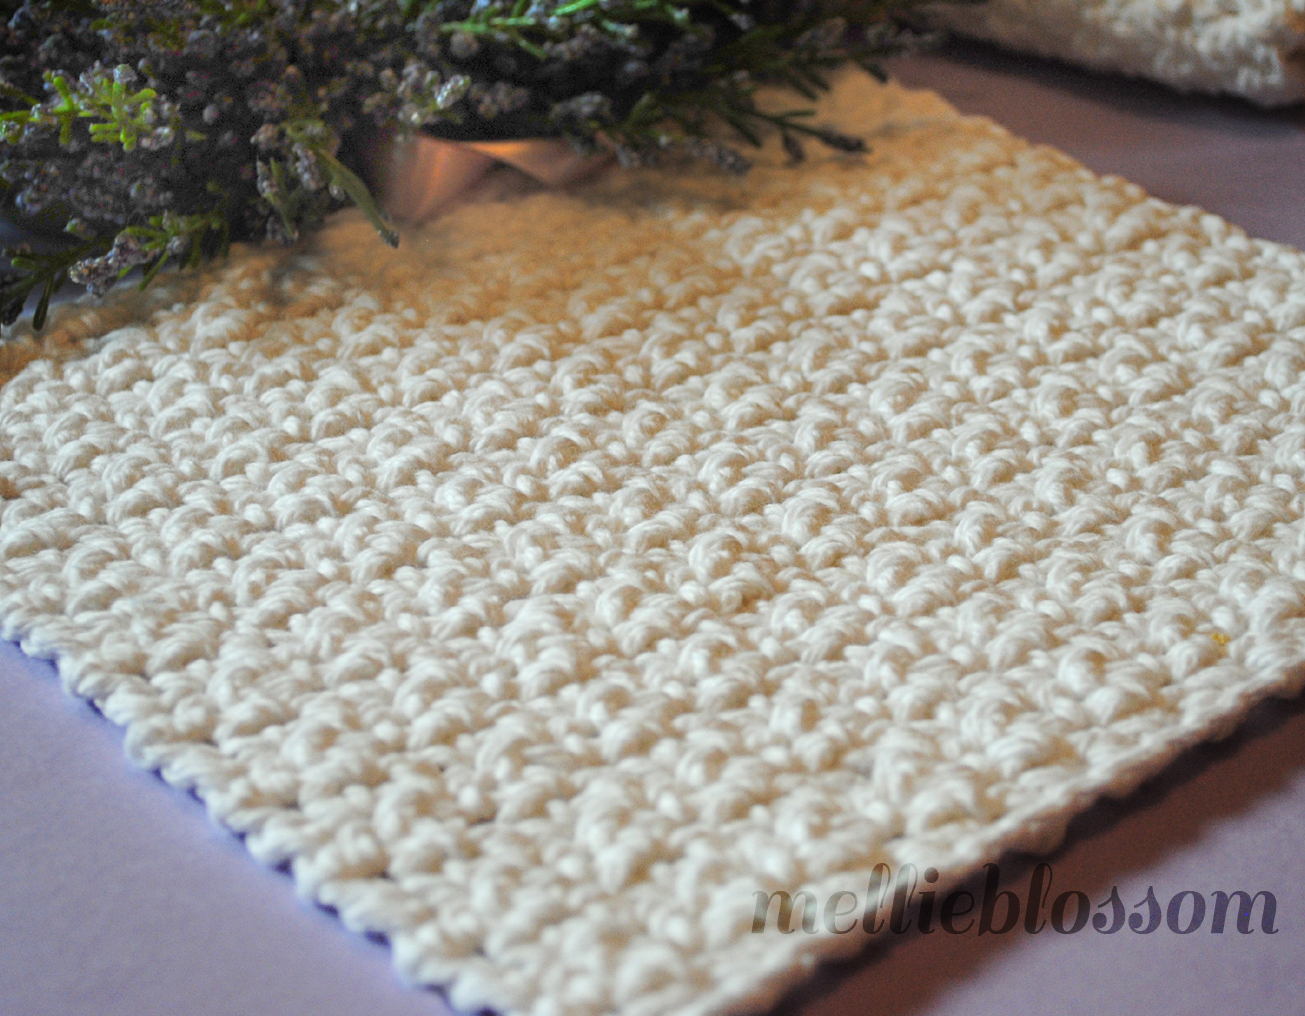 Crocheting Dishcloths : Free Easy Crochet Dishcloth Pattern - mellie blossom